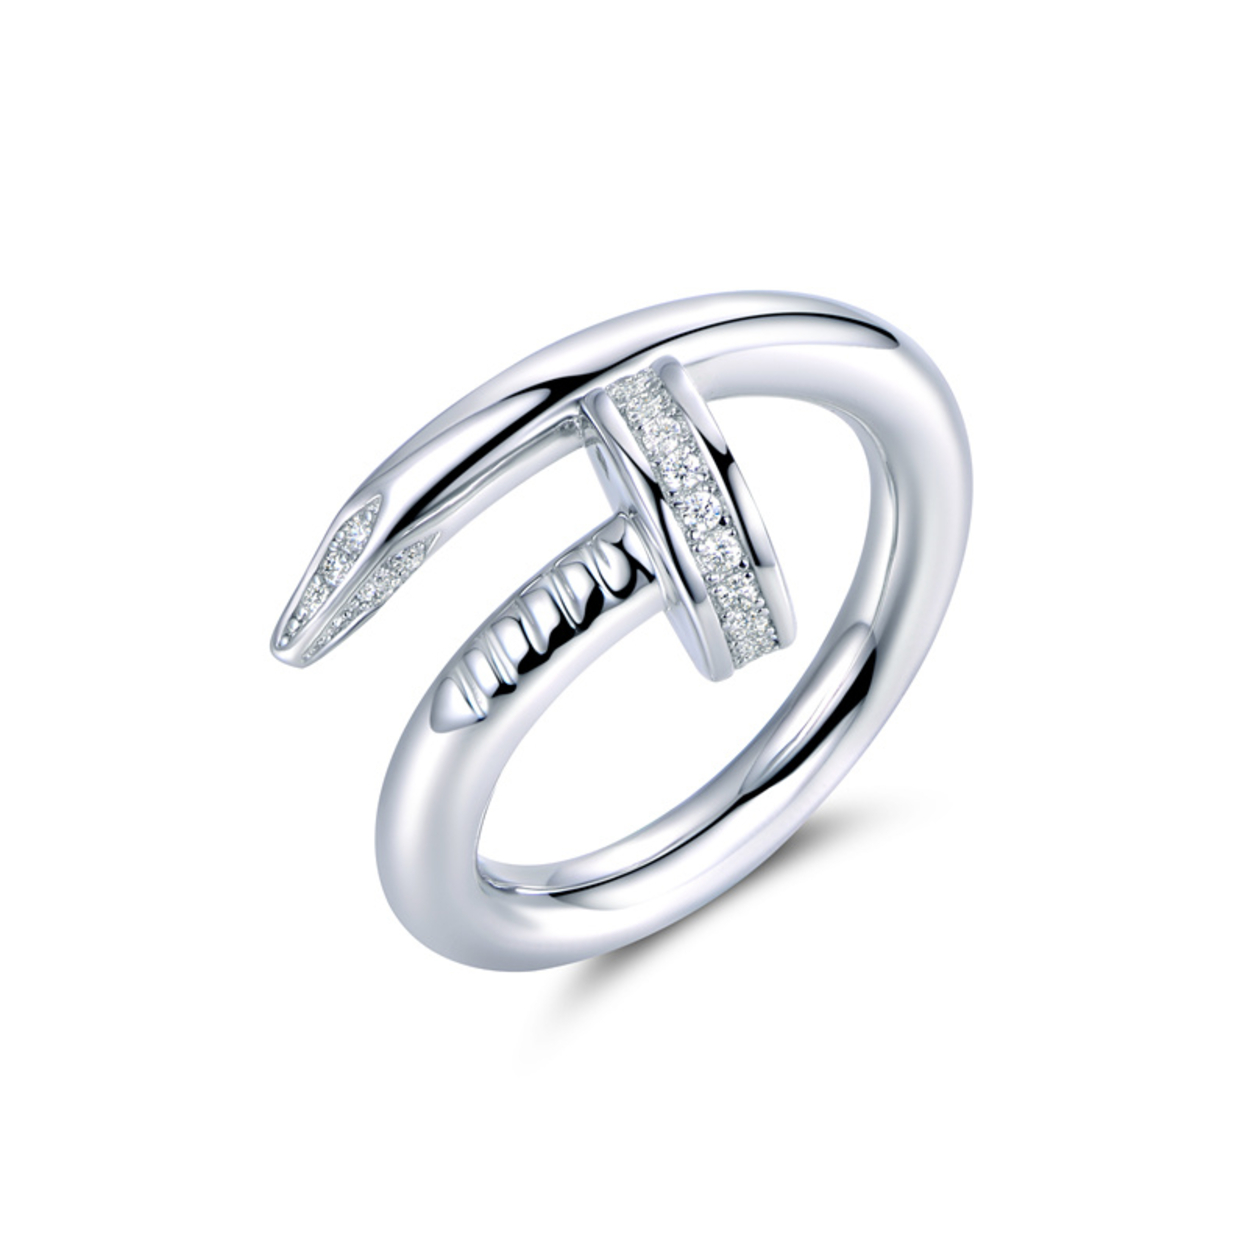 White Gold Plated & Cubic Zirconia Nail Ring Size 5